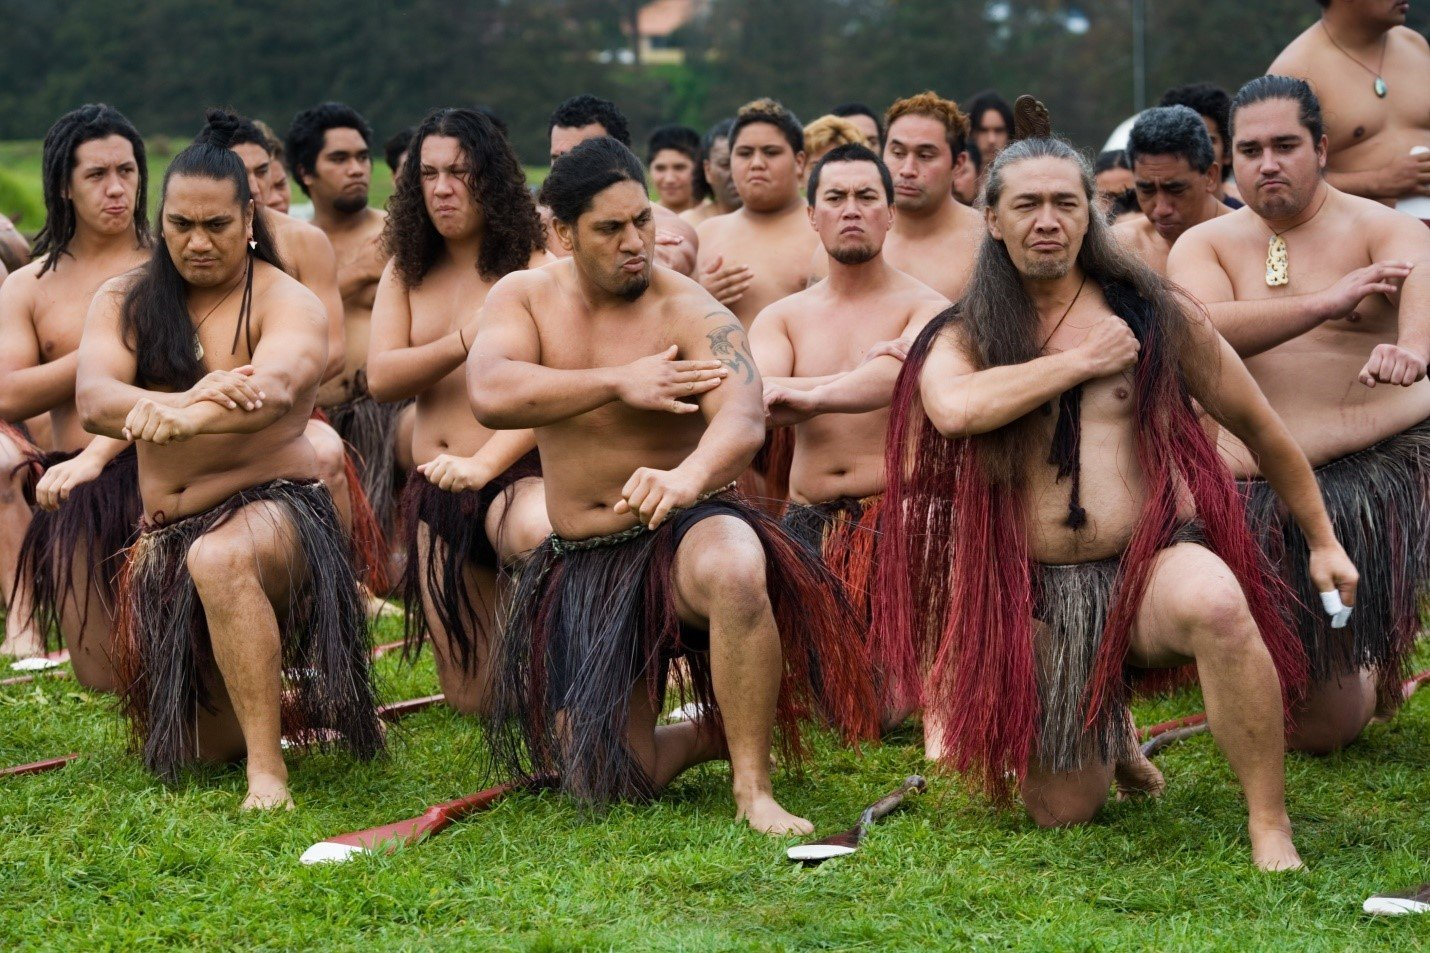 Maori—unveil an ancient culture